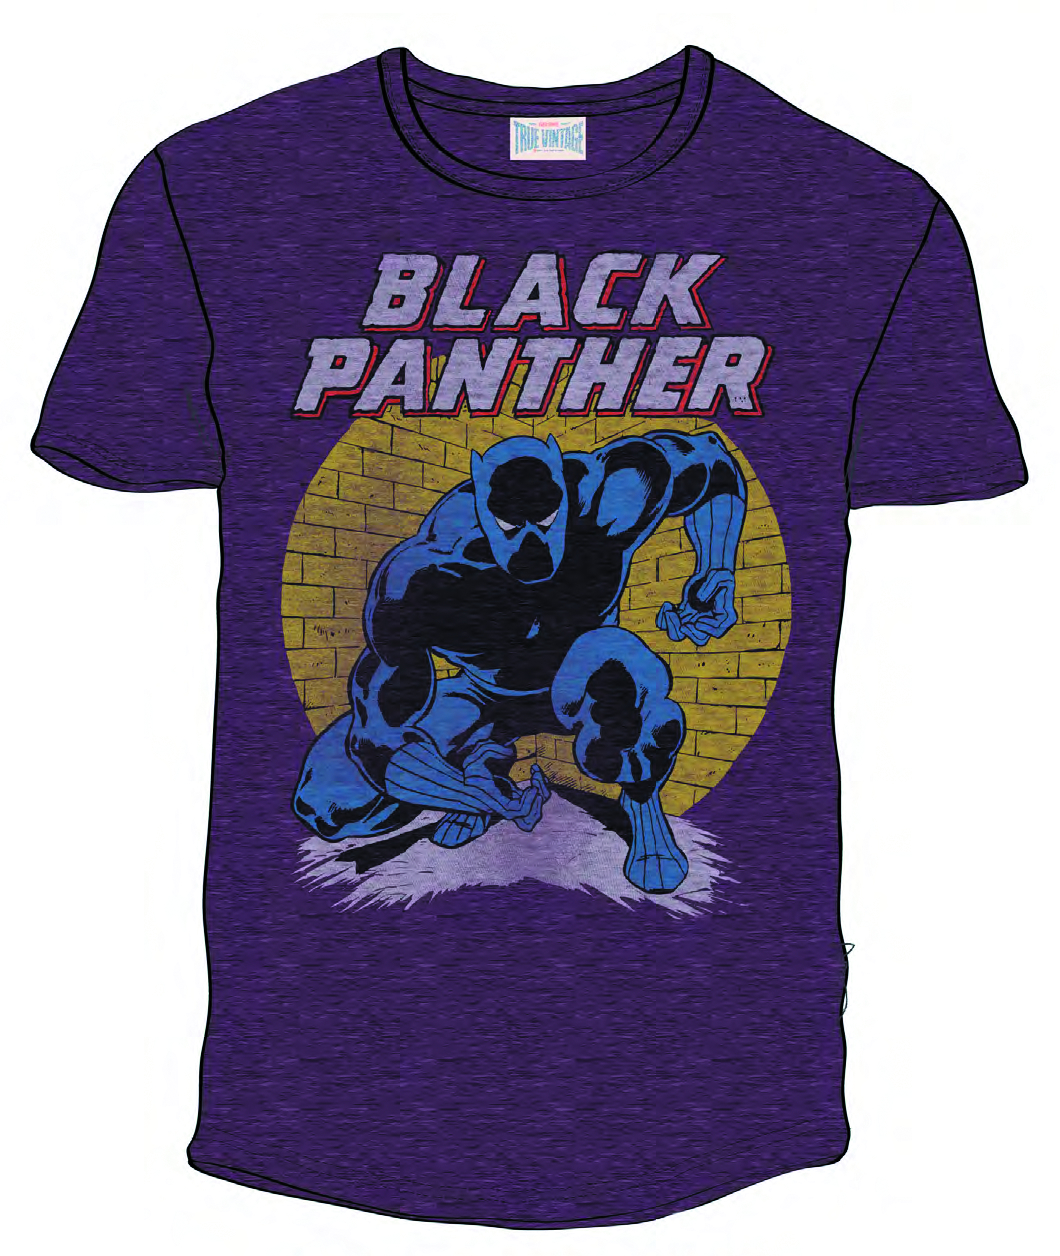 BLACK PANTHER PX BLACKBERRY HEATHER T/S LG